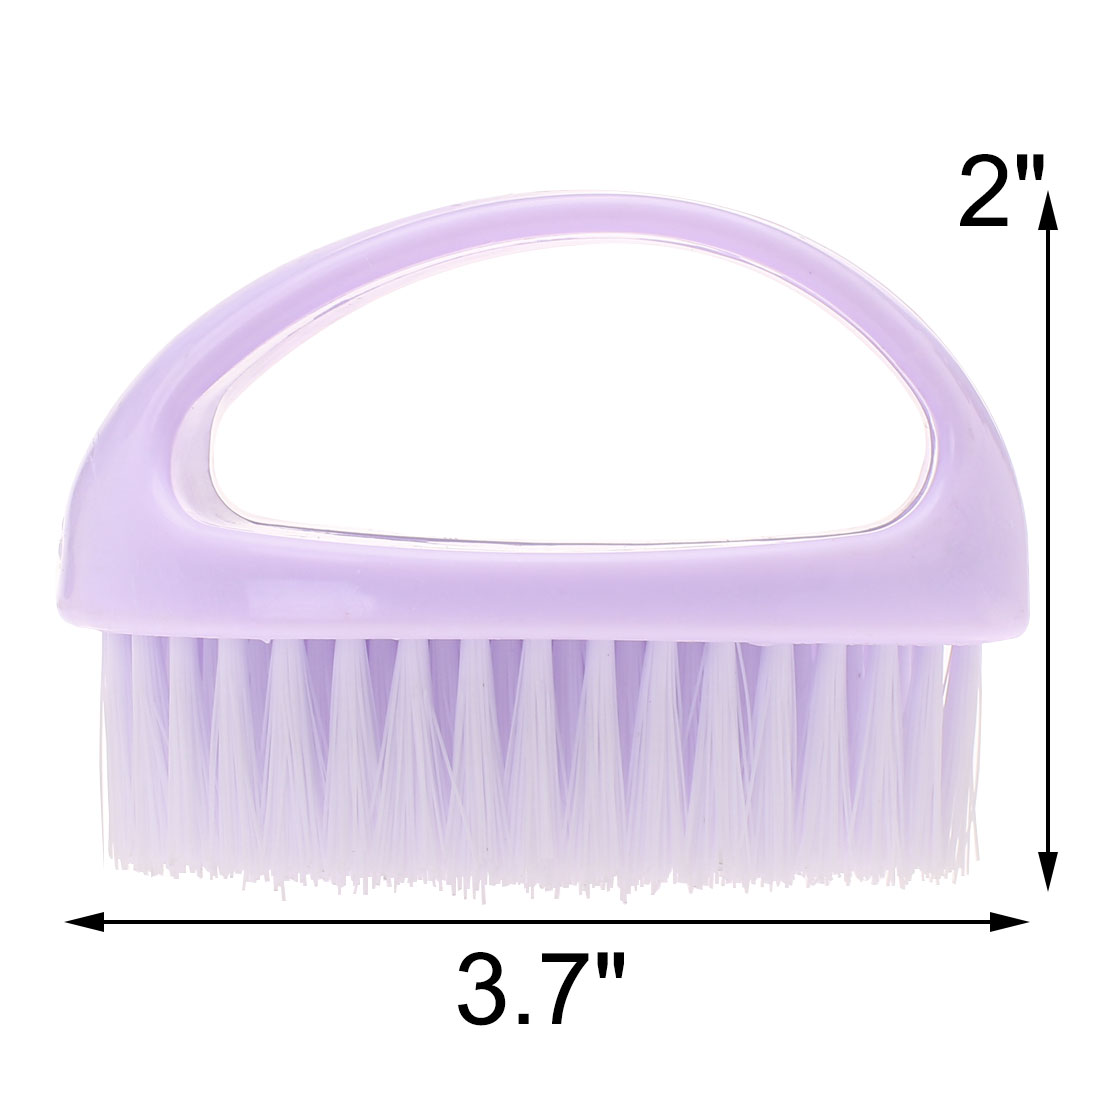 Household Plastic Handle Clothes Shoes Scrubbing Brush Cleaning Tool Purple - image 1 of 2